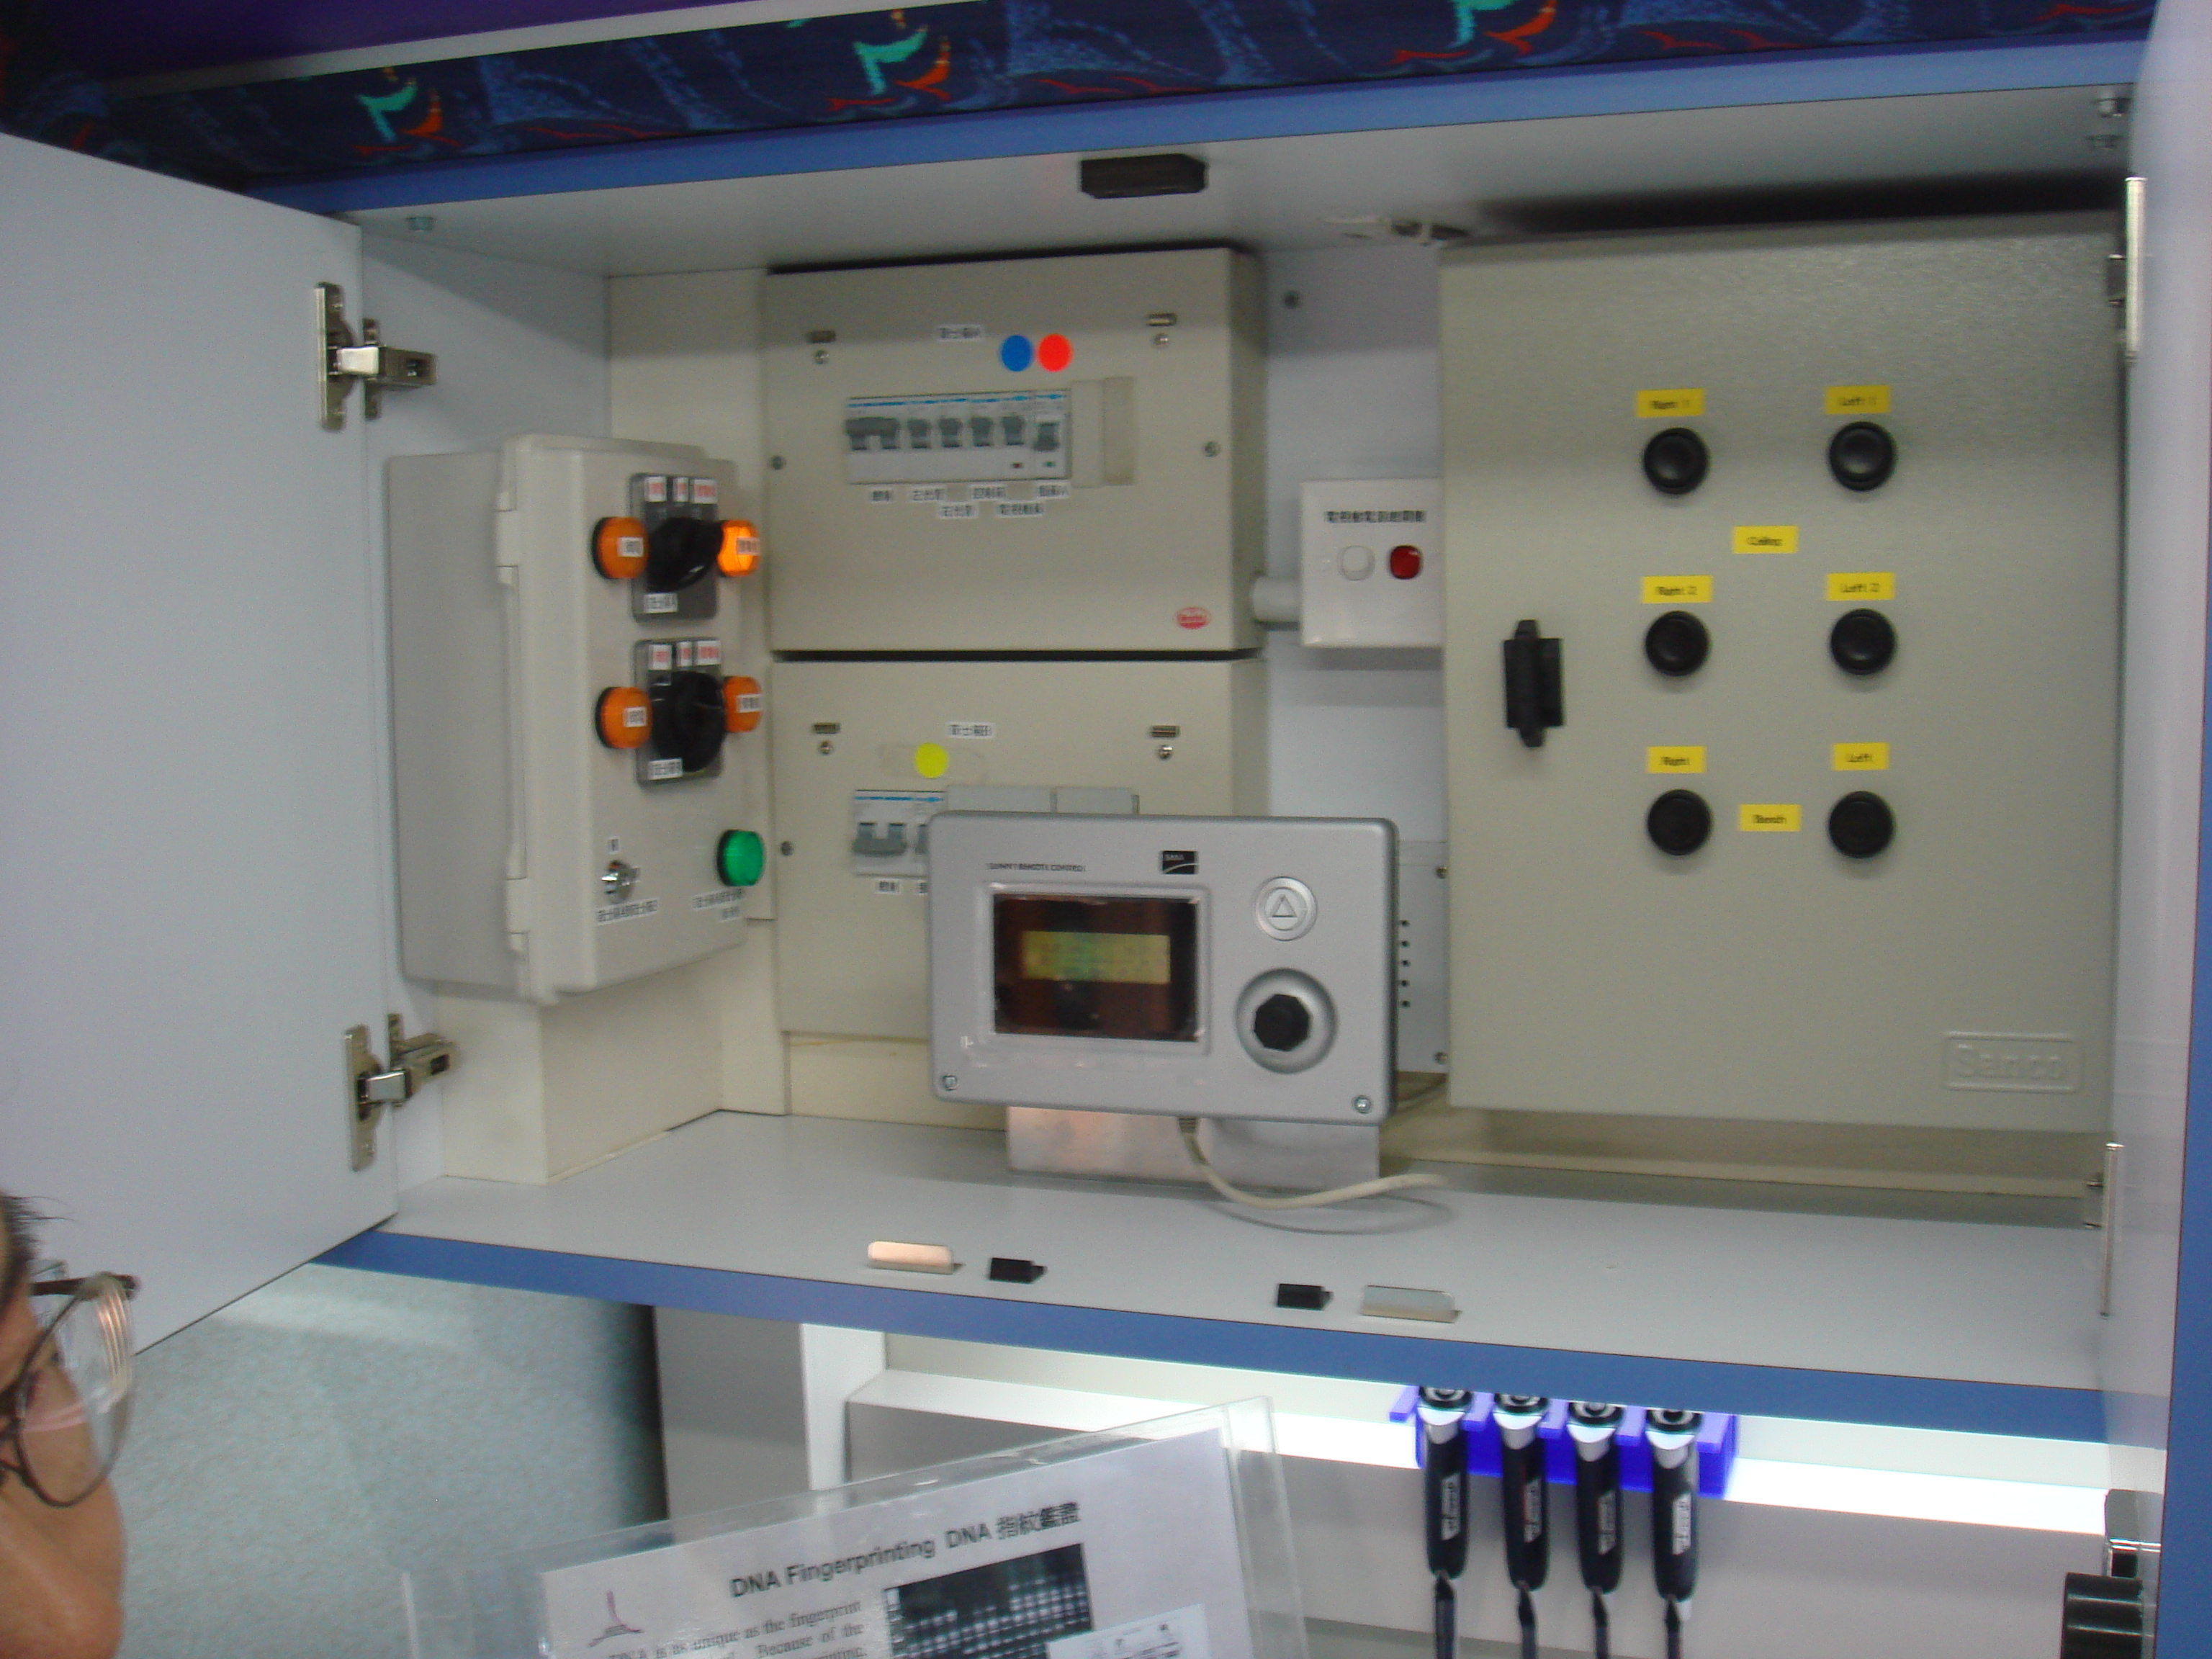 The power control and air conditioning panels.